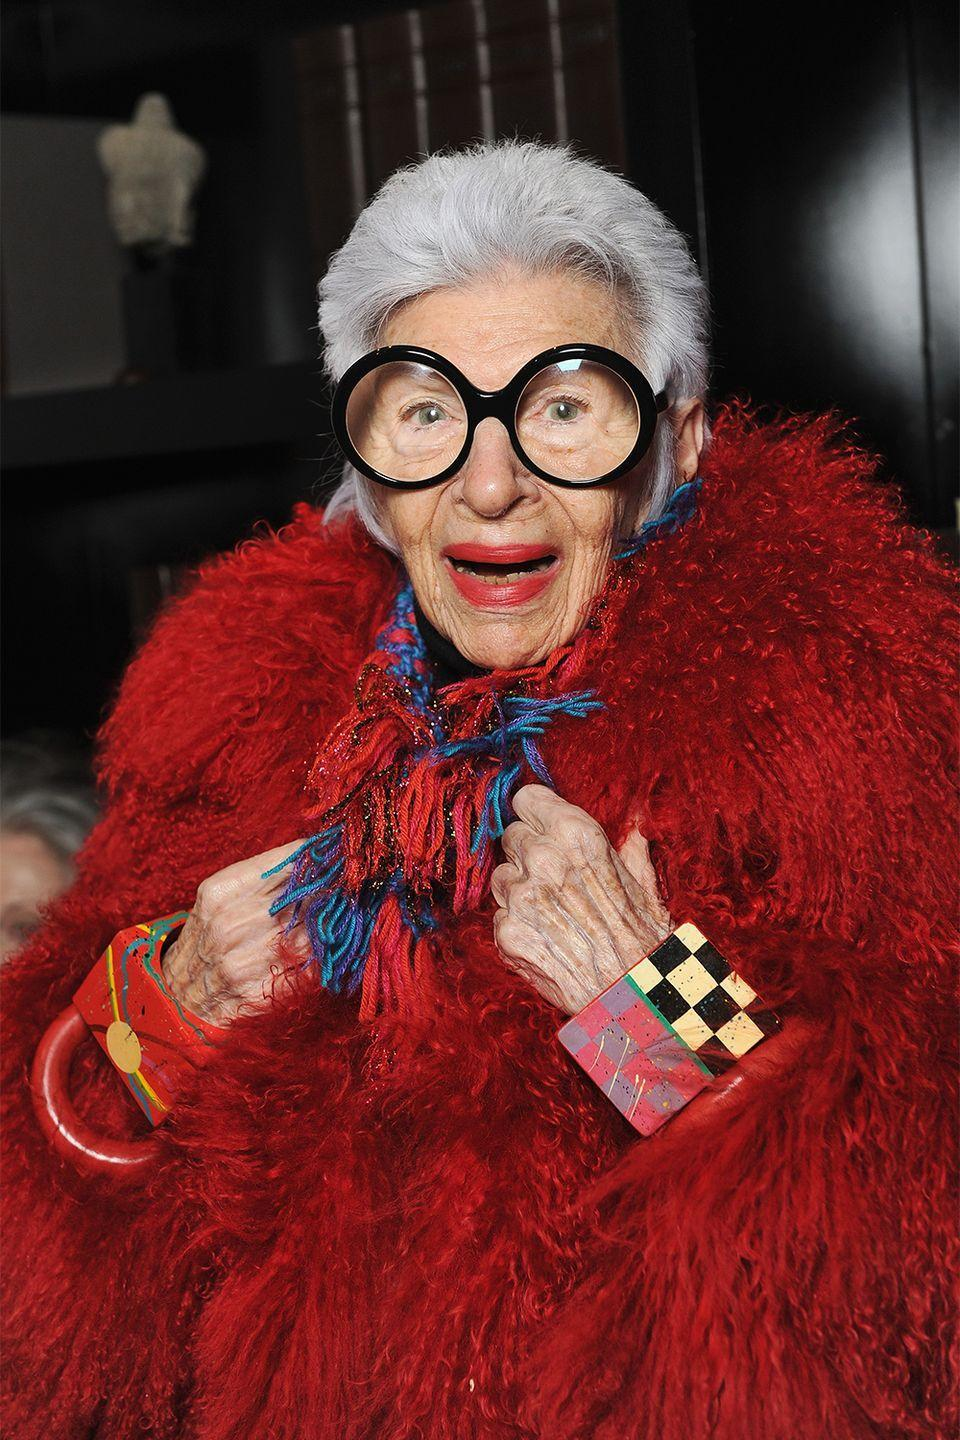 """<p>Go bold or go home as one of fashion's most recognizable faces. All you need are some round oversized glasses and an overload of statement jewelry, and you're ready to do Iris Apfel proud. </p><p><strong>Get the look: Valentino</strong> hexagon-frame acetate and gold-tone optical glasses, $361, <a href=""""https://click.linksynergy.com/deeplink?id=6Km1lFswsiY&mid=24449&murl=https%3A%2F%2Fwww.net-a-porter.com%2Fen-us%2Fshop%2Fproduct%2Fvalentino%2Faccessories%2Fglasses%2Fvalentino-garavani-hexagon-frame-acetate-and-gold-tone-optical-glasses%2F9649229528848827"""" rel=""""nofollow noopener"""" target=""""_blank"""" data-ylk=""""slk:net-a-porter.com"""" class=""""link rapid-noclick-resp"""">net-a-porter.com</a>. </p><p><a class=""""link rapid-noclick-resp"""" href=""""https://click.linksynergy.com/deeplink?id=6Km1lFswsiY&mid=24449&murl=https%3A%2F%2Fwww.net-a-porter.com%2Fen-us%2Fshop%2Fproduct%2Fvalentino%2Faccessories%2Fglasses%2Fvalentino-garavani-hexagon-frame-acetate-and-gold-tone-optical-glasses%2F9649229528848827"""" rel=""""nofollow noopener"""" target=""""_blank"""" data-ylk=""""slk:SHOP"""">SHOP</a>  </p>"""